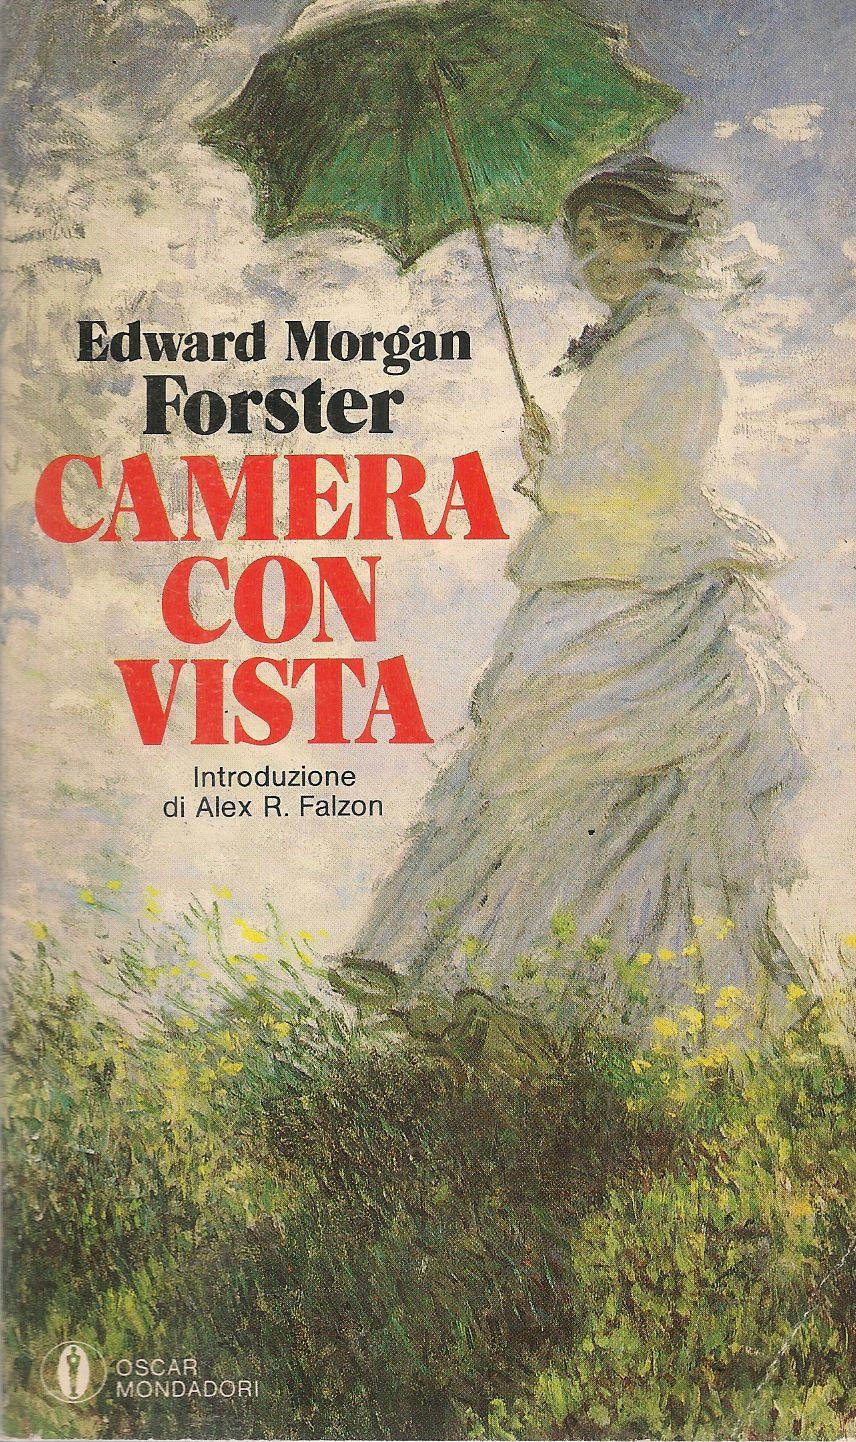 CAMERA CON VISTA - EDWARD MORGAN FORSTER